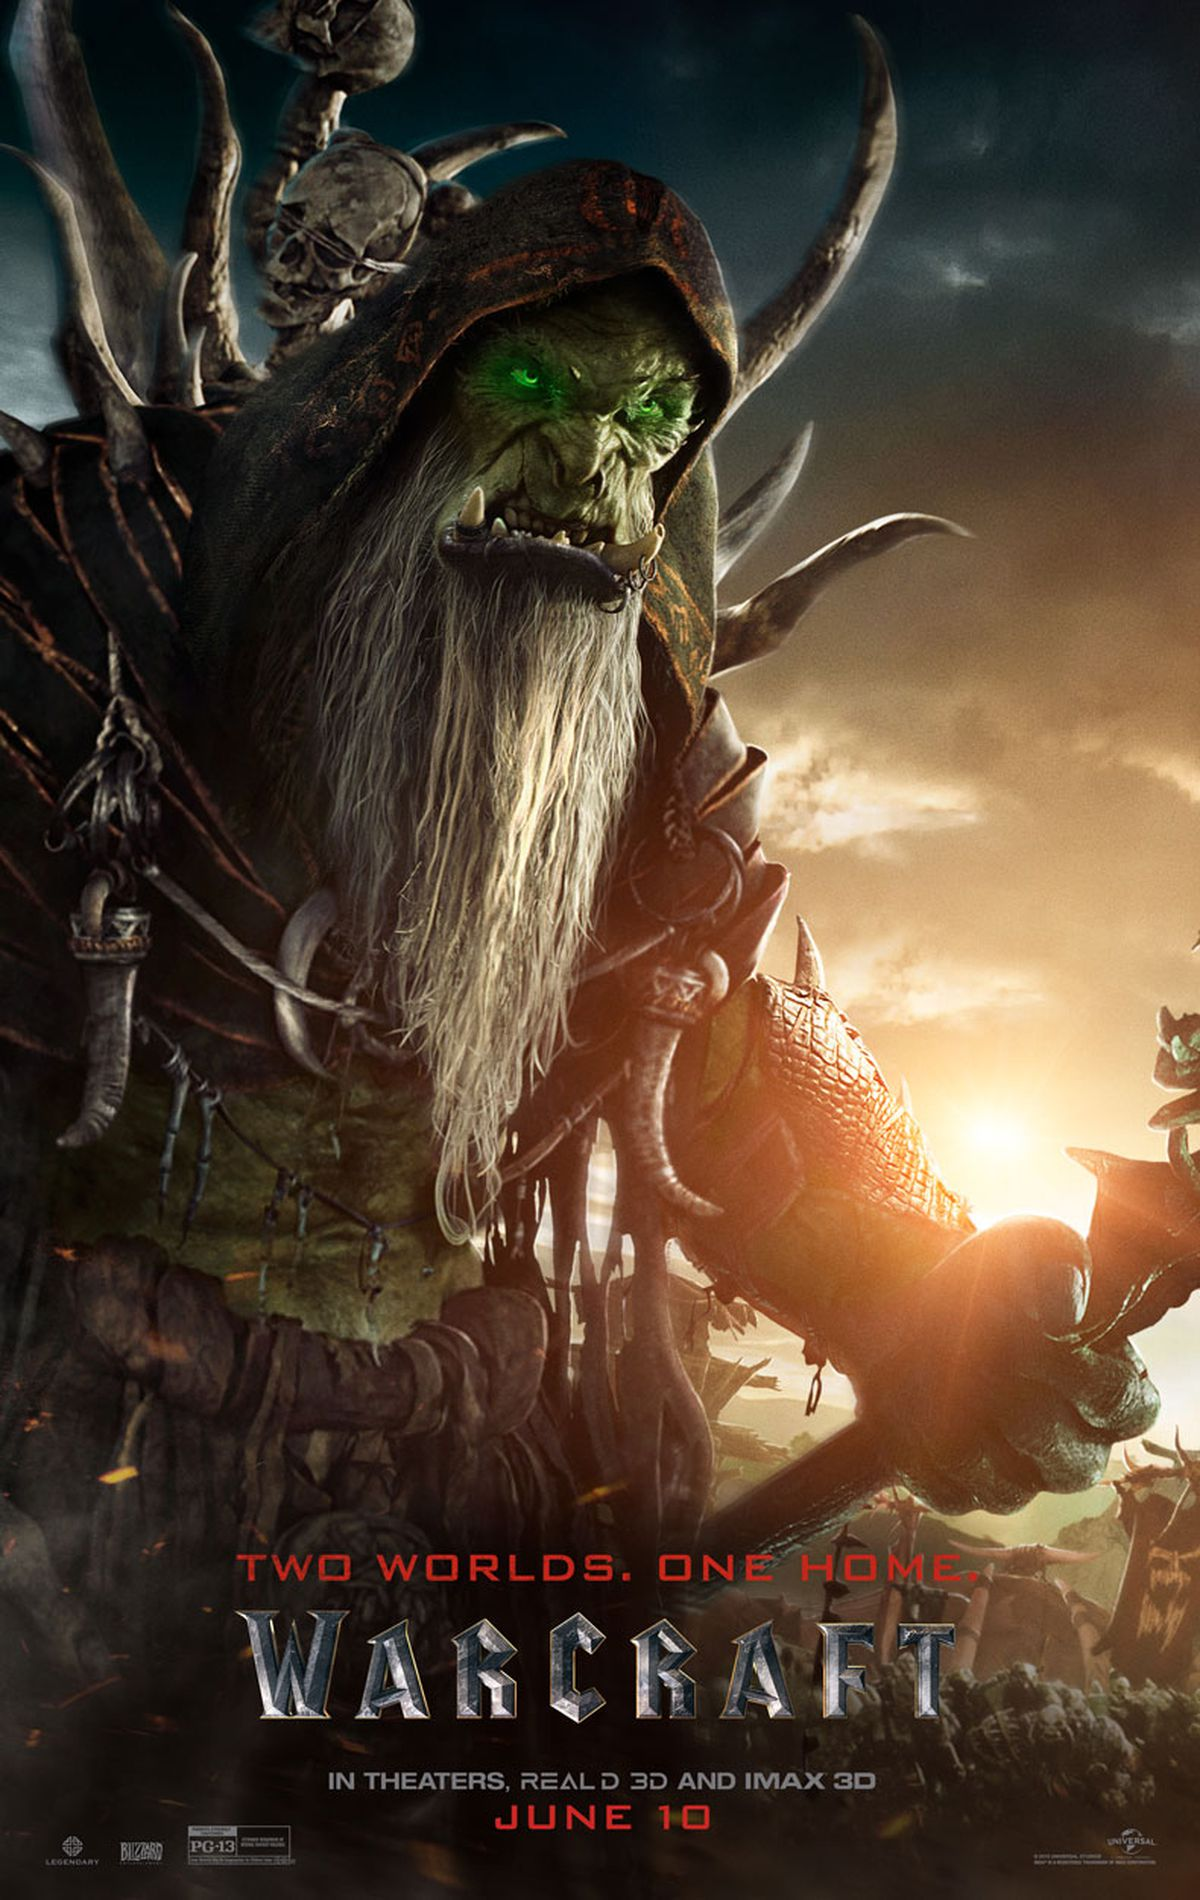 New Warcraft movie posters offer a closer look at its orcs